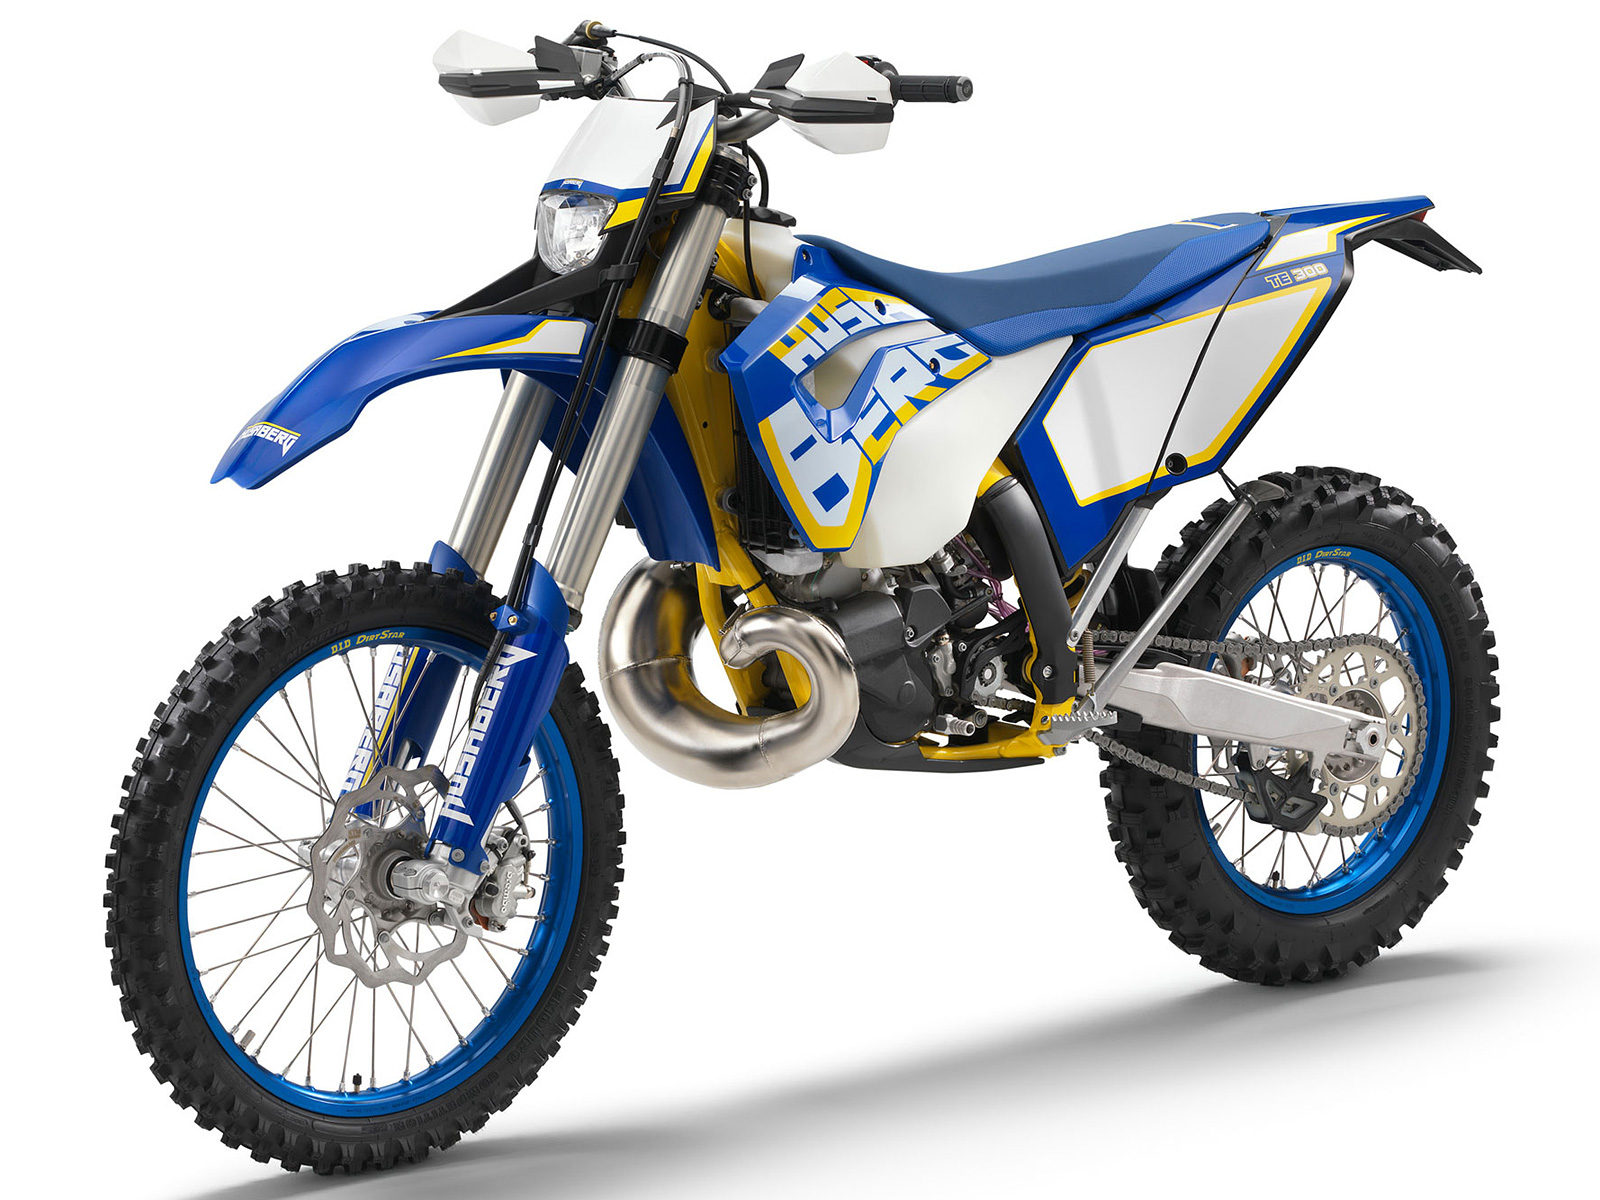 2012 husaberg te300 motorcycle wallpapers review. Black Bedroom Furniture Sets. Home Design Ideas